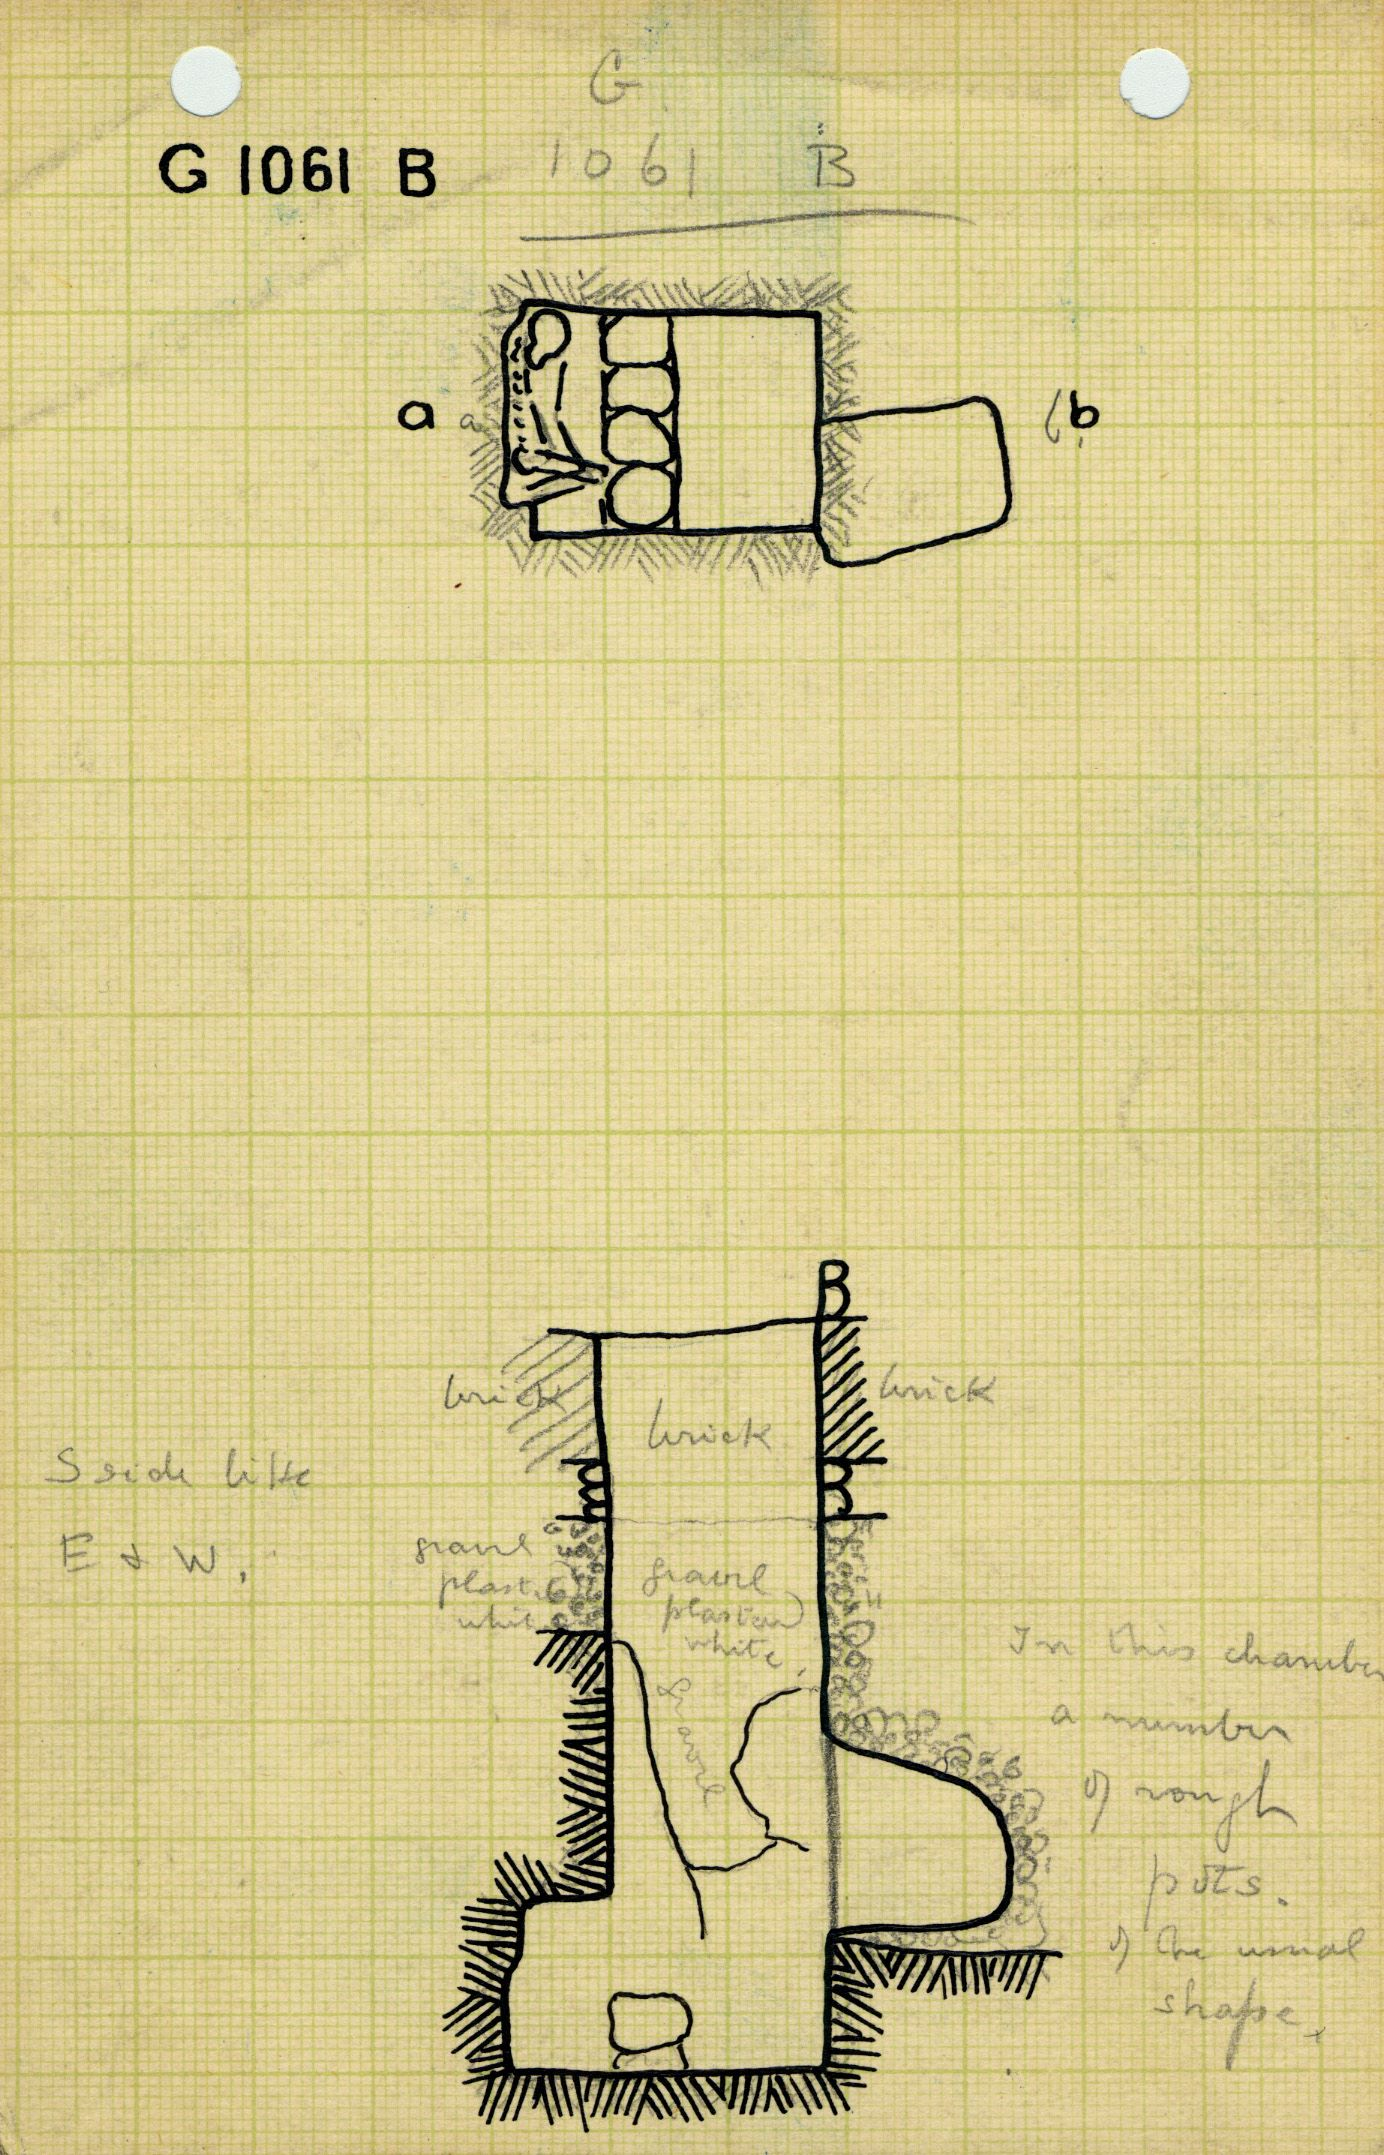 Maps and plans: G 1061, Shaft B